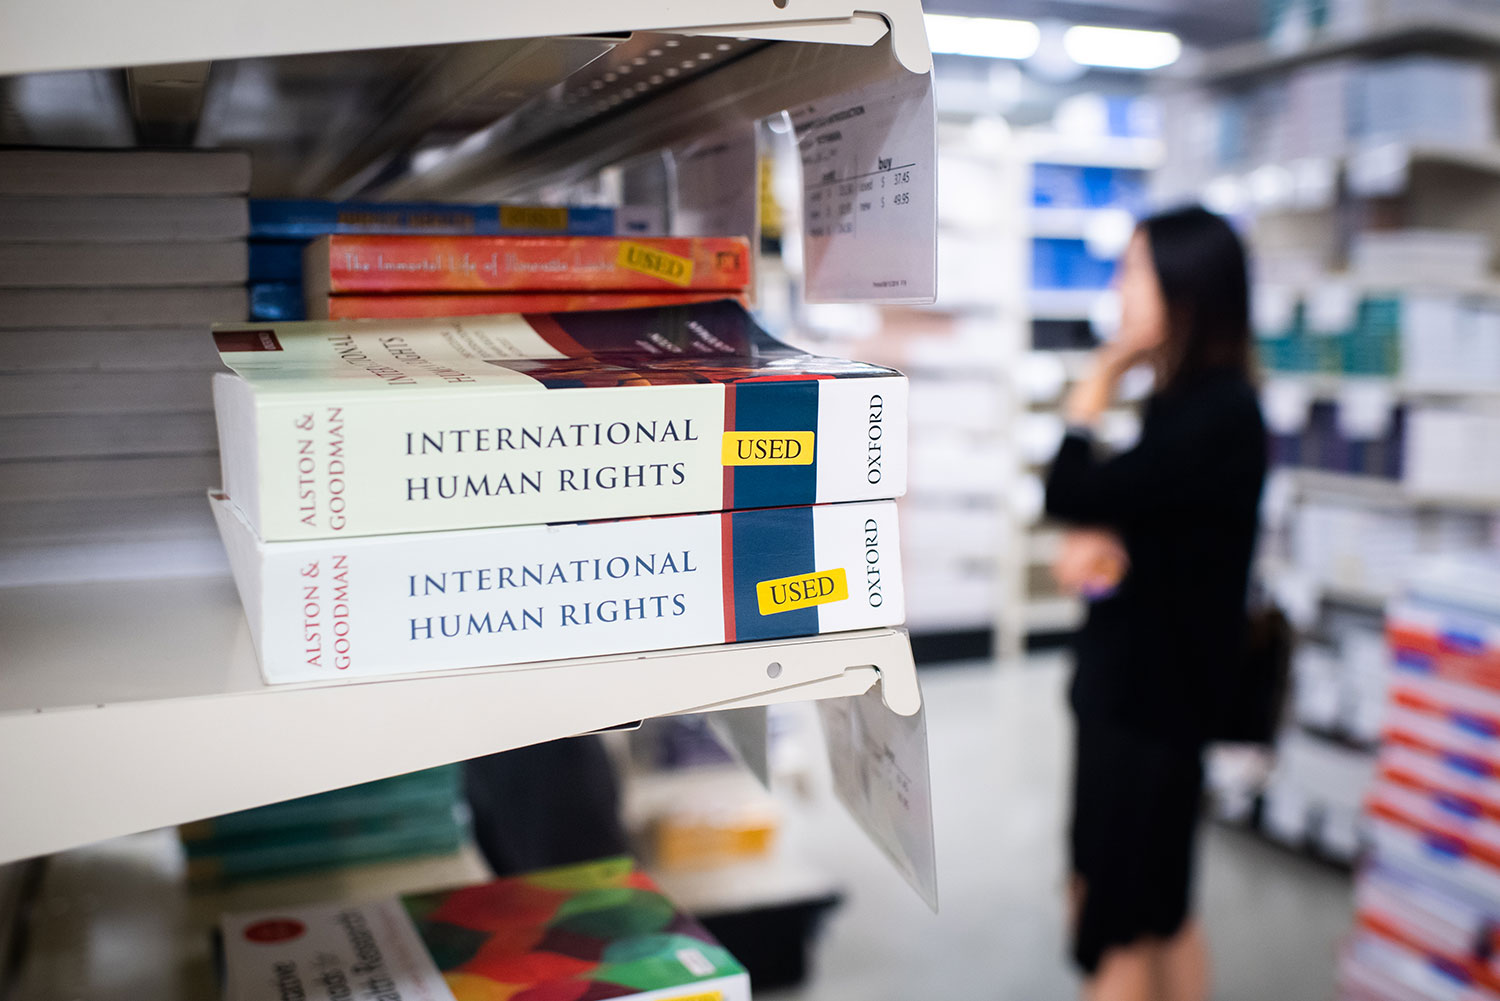 Two used copies of an International Human Rights textbook on a shelf with a customer browsing textbooks in the background